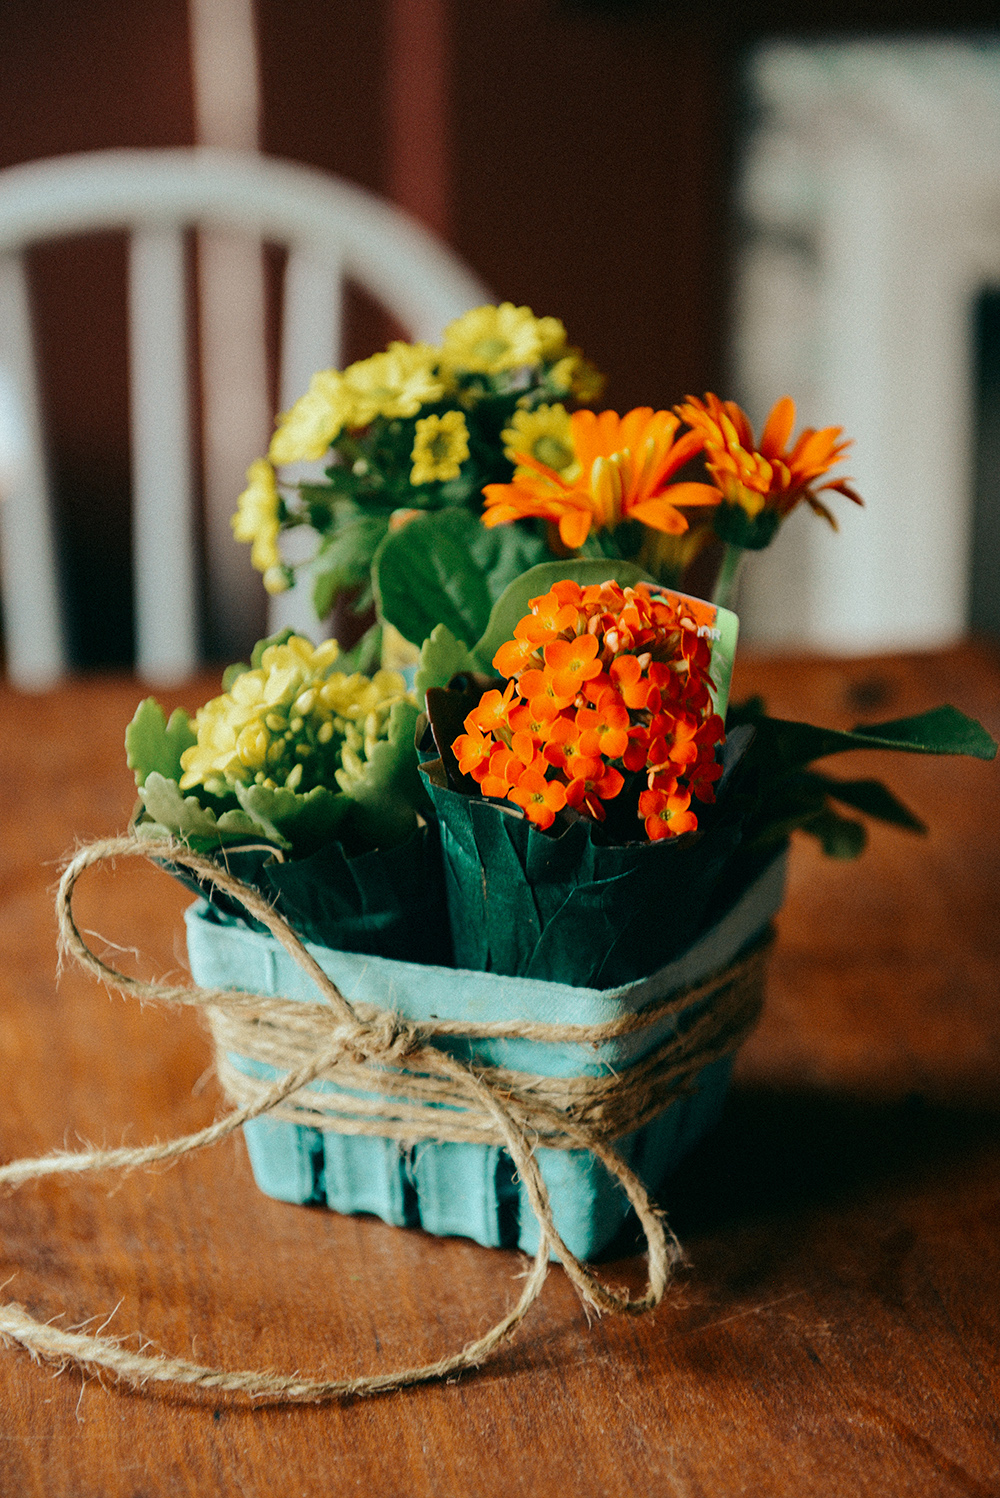 Flowers and Fruit by With The Grains 03